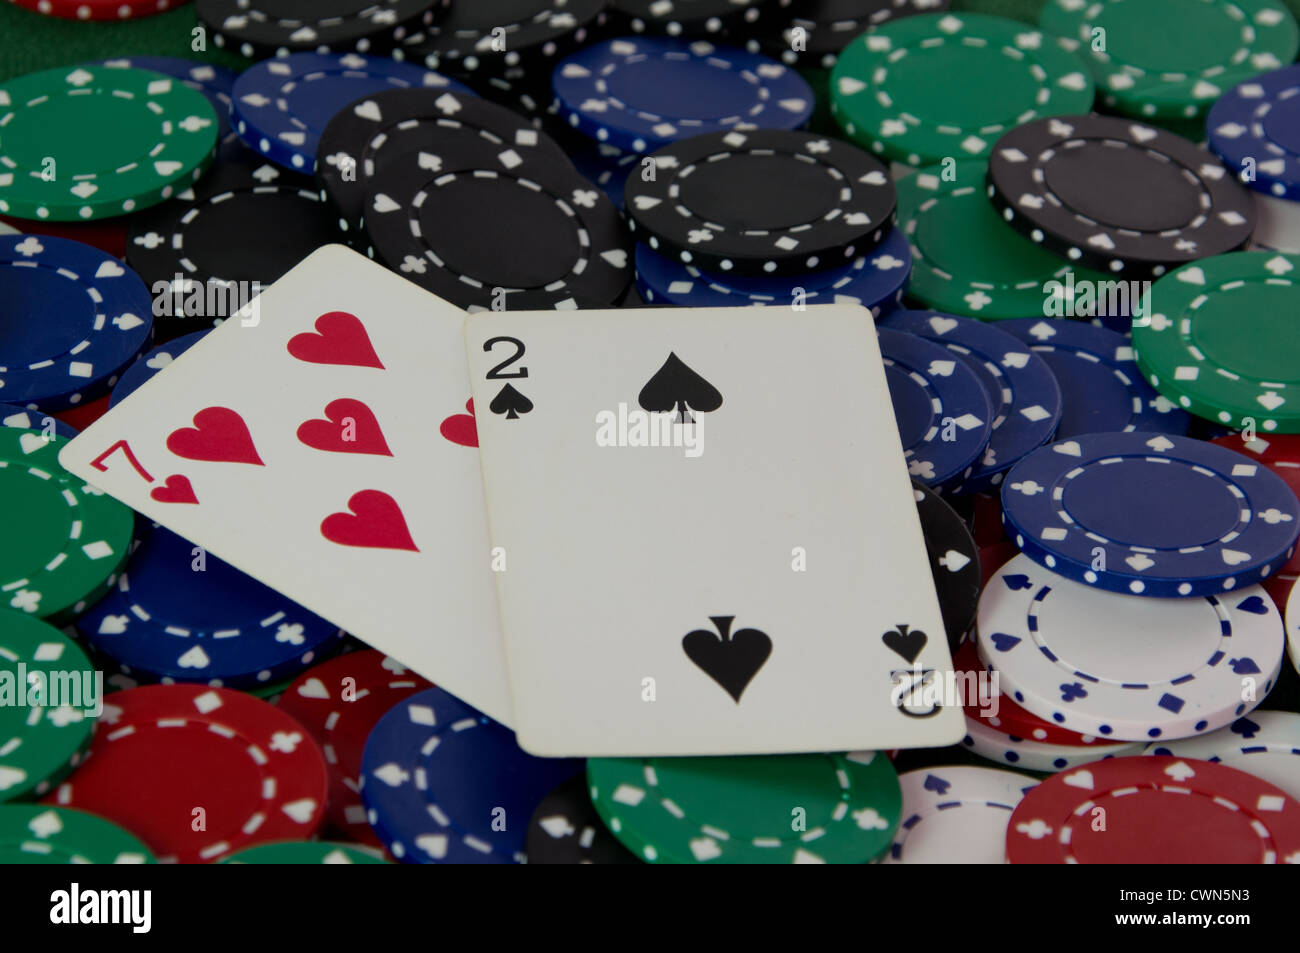 Seven deuce off suit Texas Hold'em Poker hand on a pile of casino chips - Stock Image